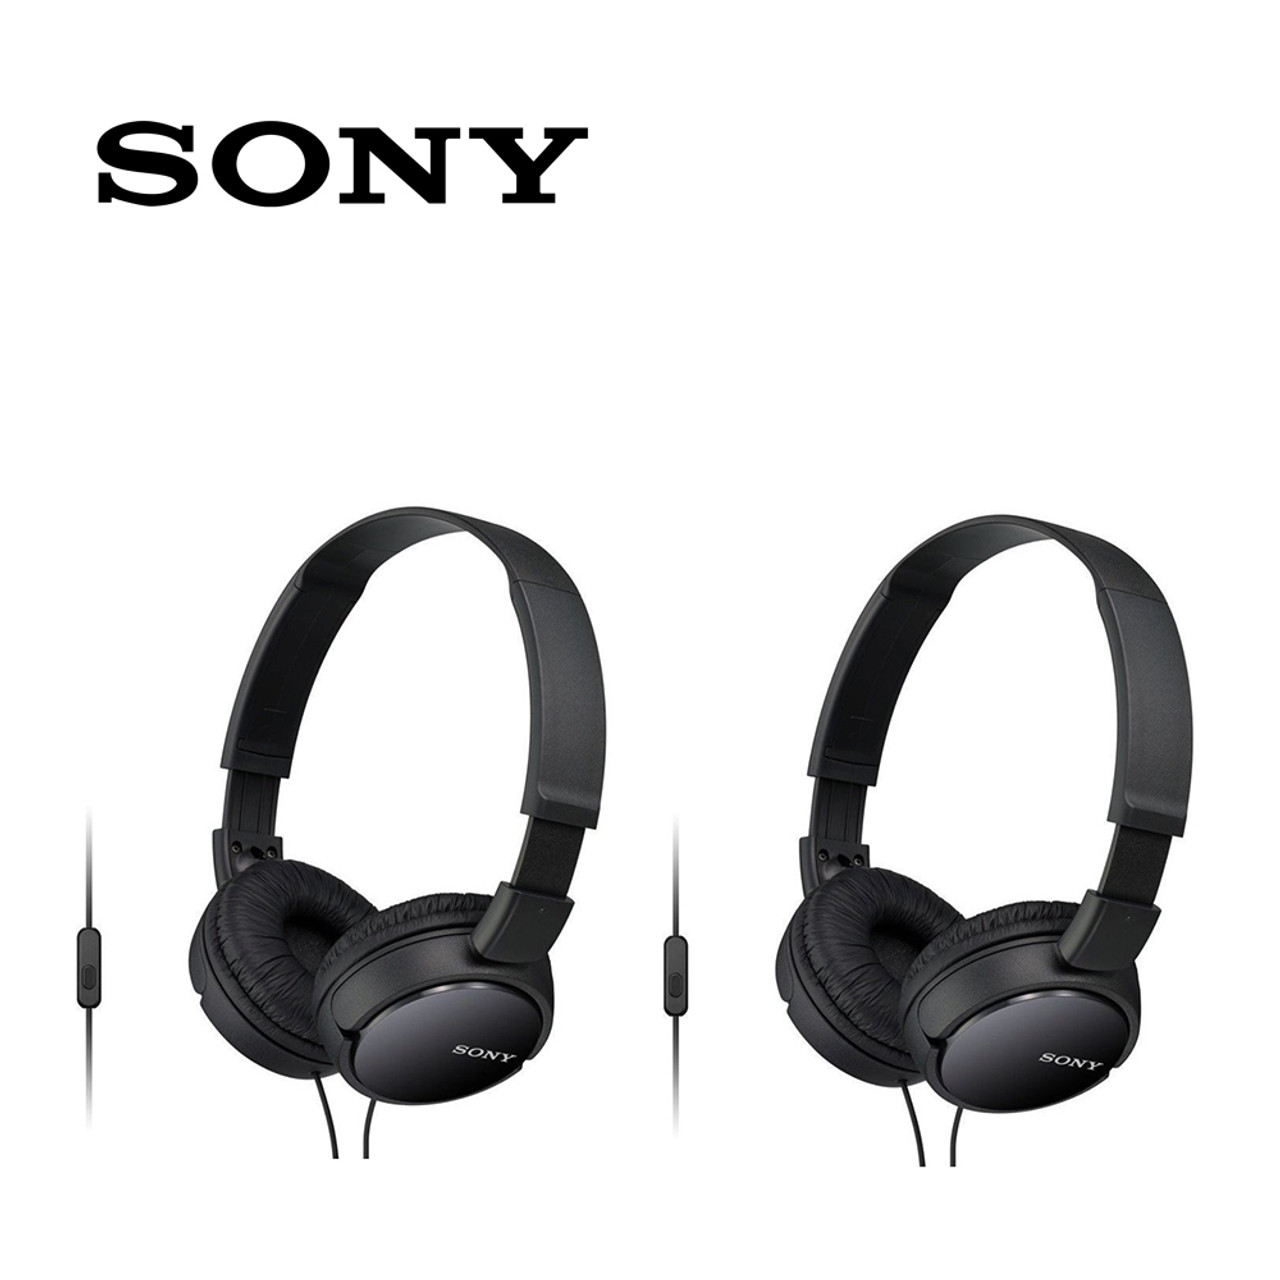 Sony Extra Bass Headphones, MDR-ZX110AP (2-Pack) $24.99 (58% OFF)